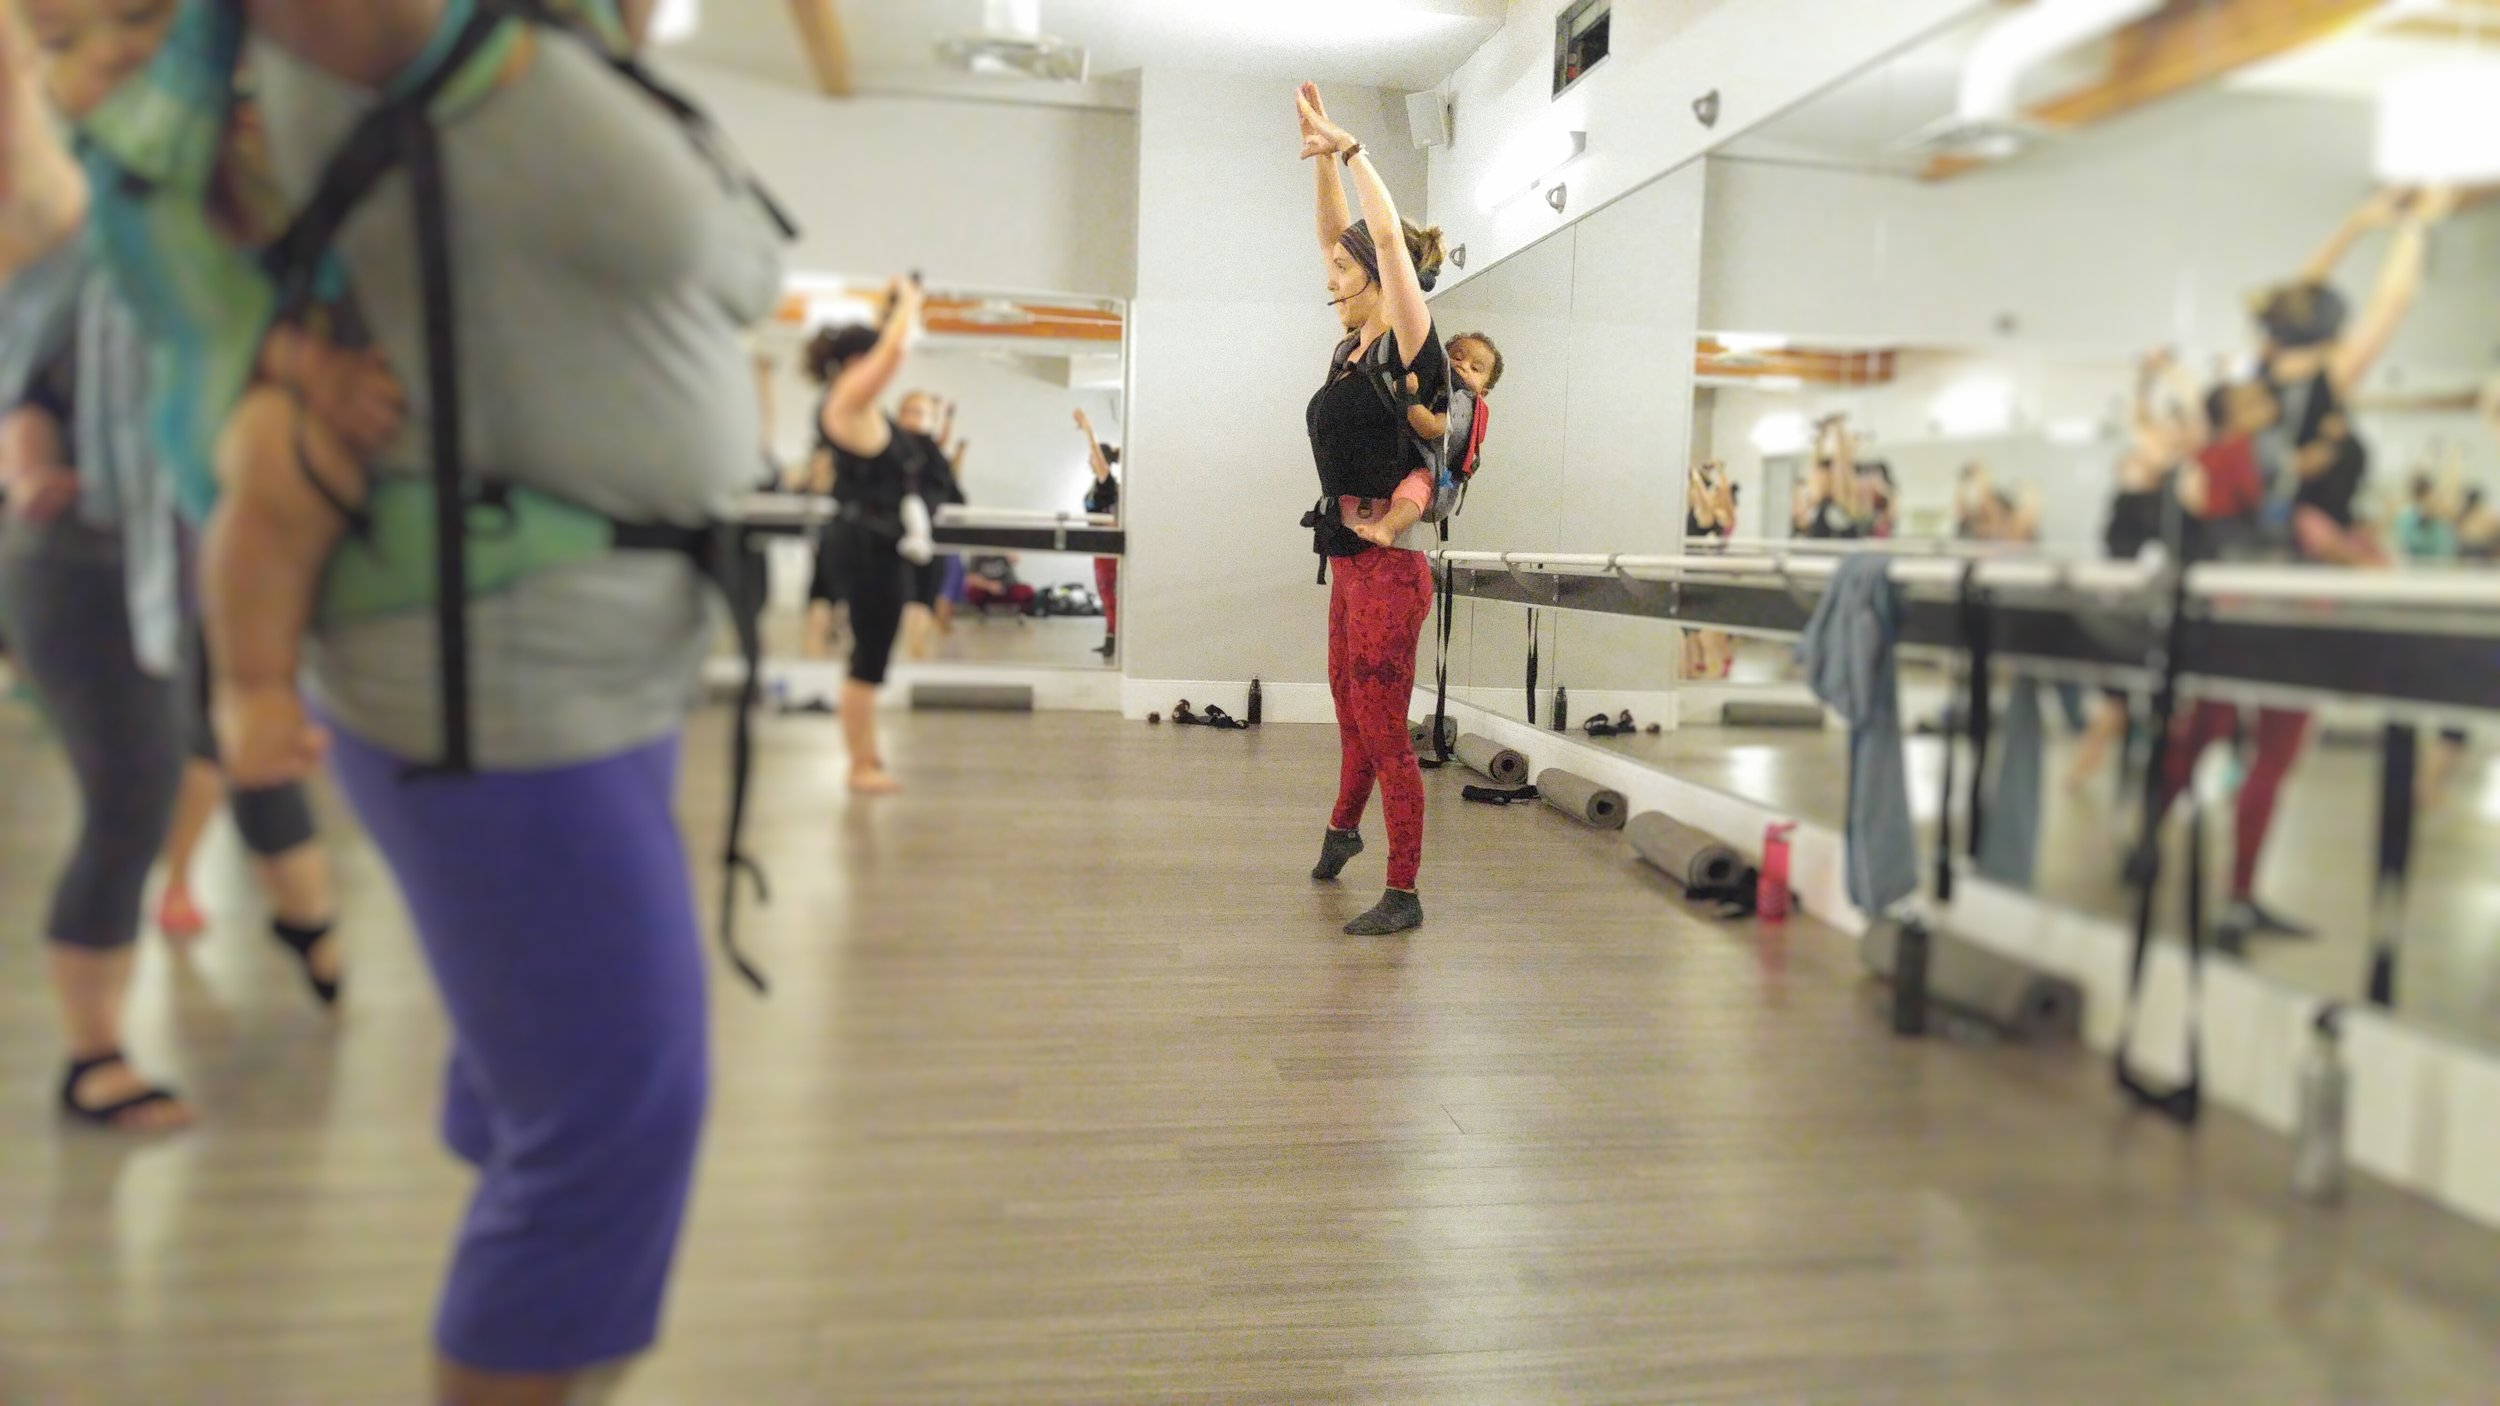 Bethany wearing her son while teaching a barre class at Xtend Barre Edmonton. [Image description: A woman stands in the centre of a mirrored room teaching a barre class. She is wearing red pants and wearing a child on her back. The rest of the room is blurred and shows other mothers participating in the class as well as mirrors reflecting that scene.]